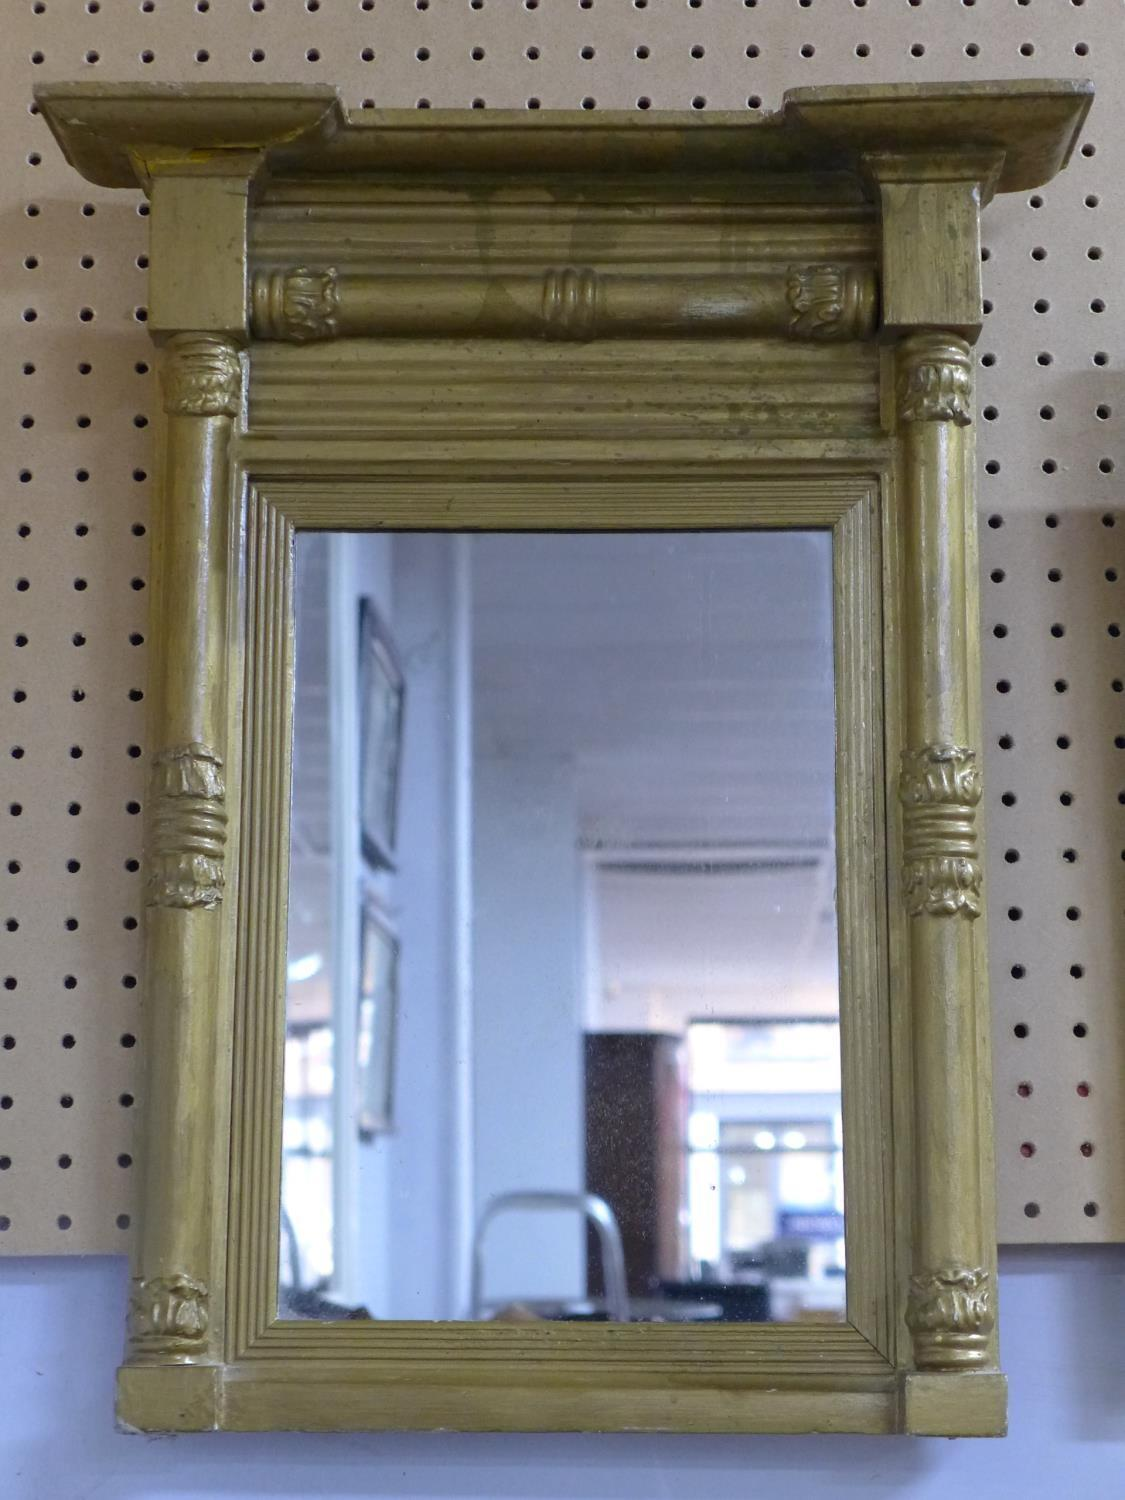 Lot 179 - A giltwood pier mirror, with breakfront pediment and acanthus carved column supports, 56 x 45cm